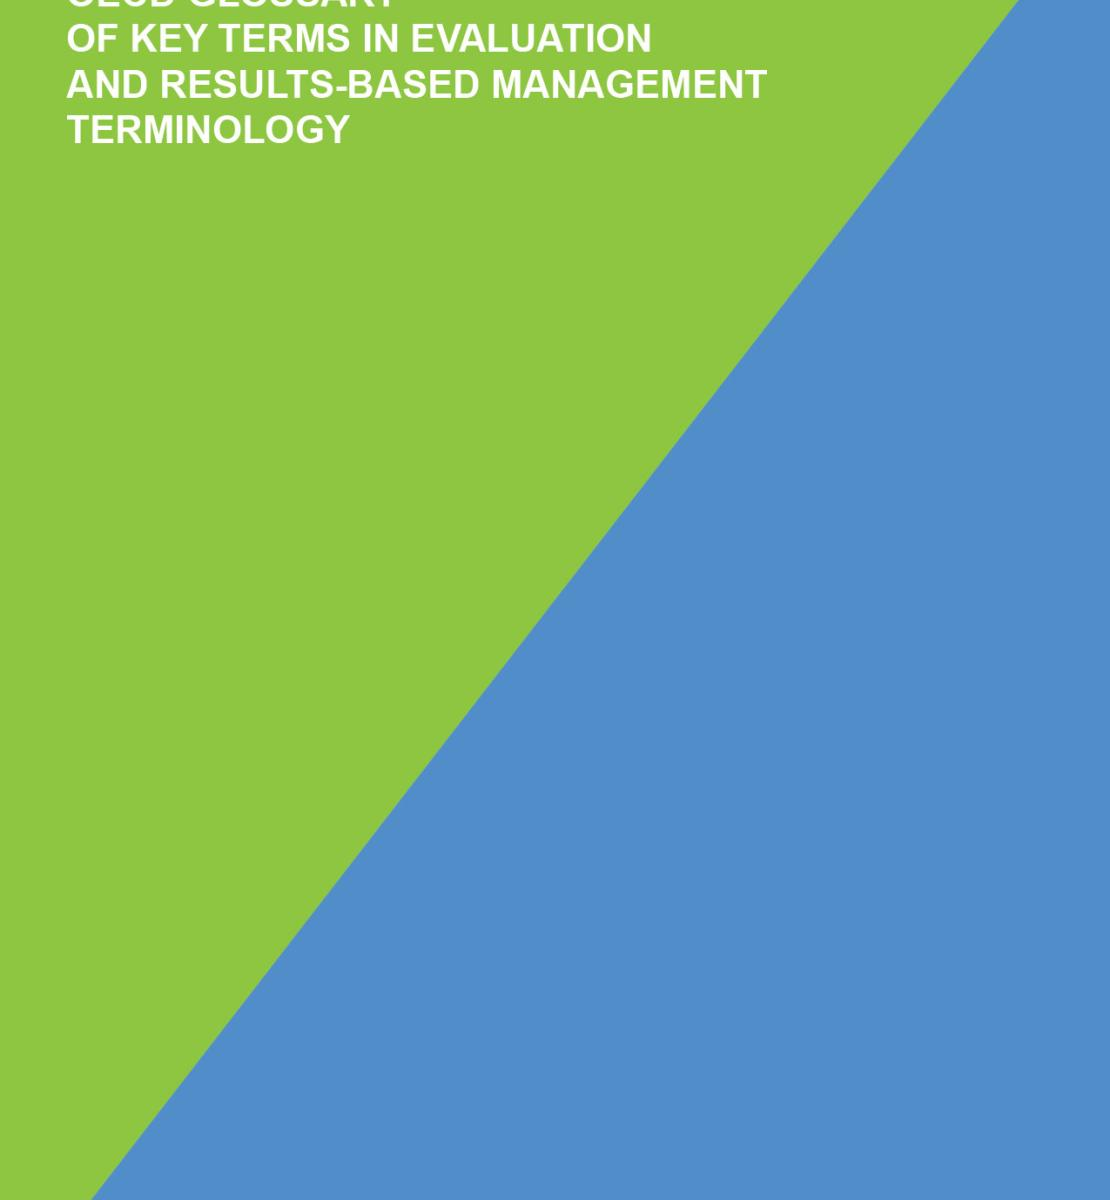 OECD Glossary of Key Terms in Evaluation and Results-based Management Terminology